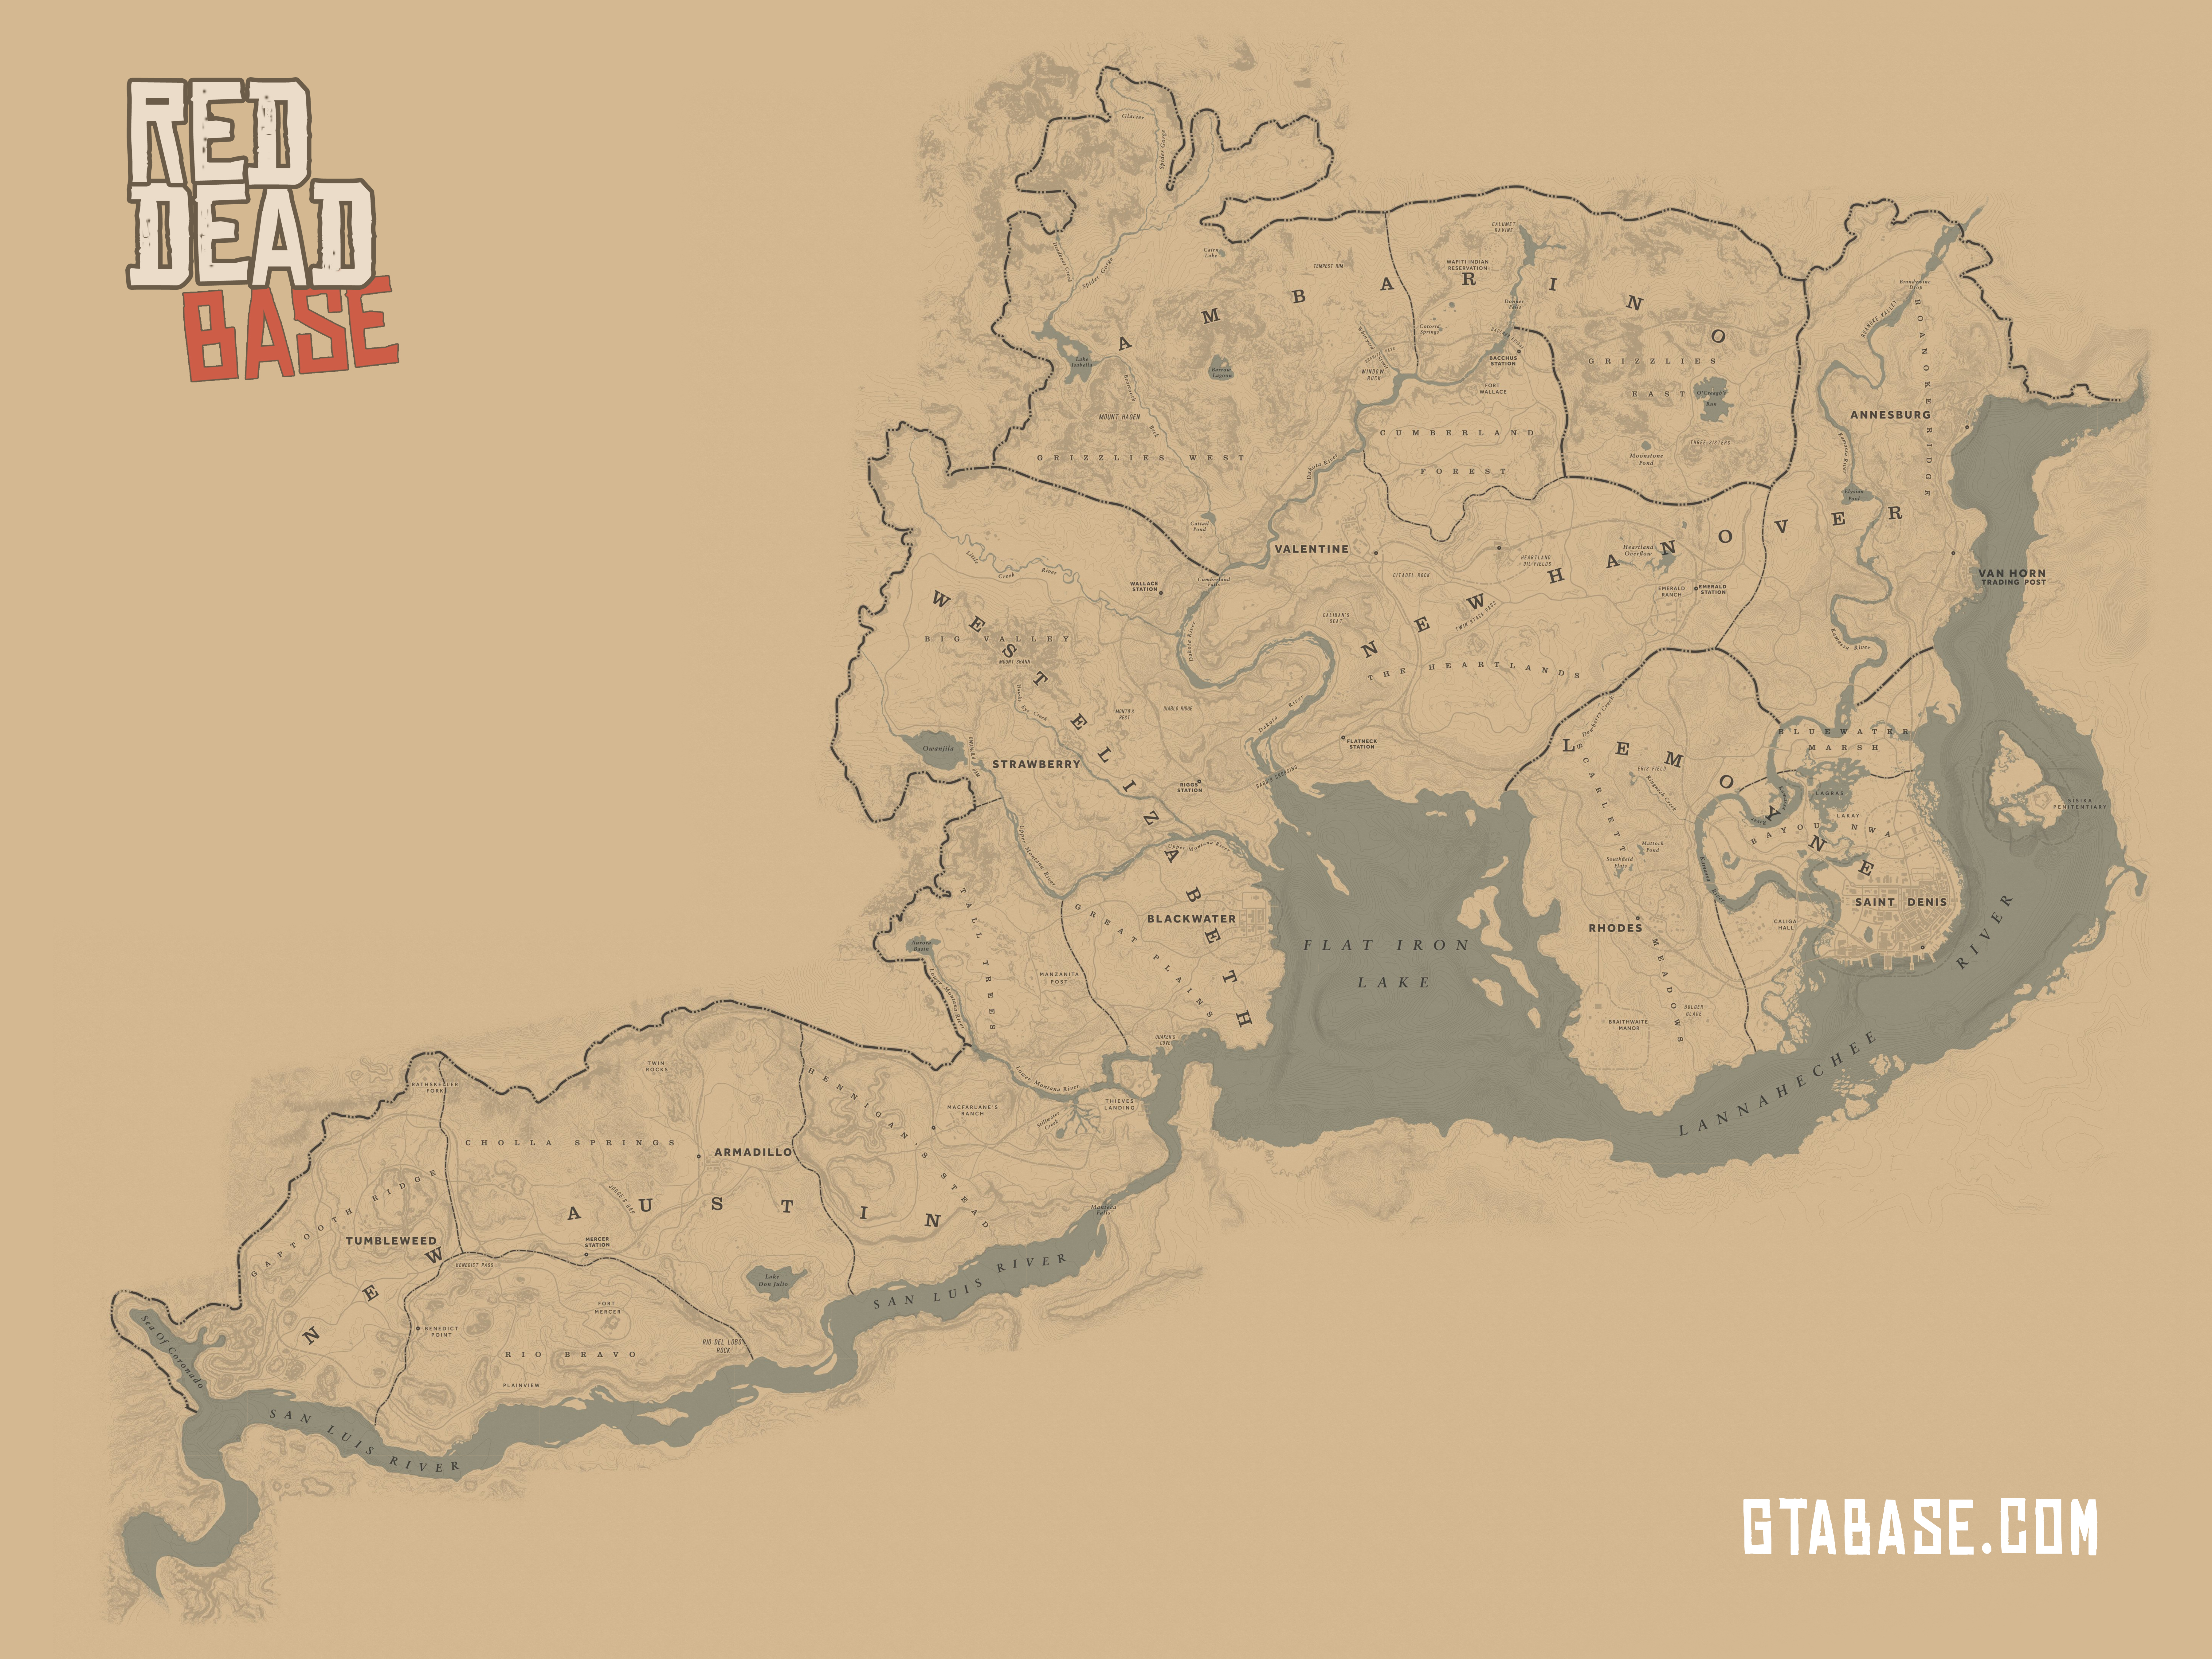 Red Dead Redemption 2 Map From Gtabase 1